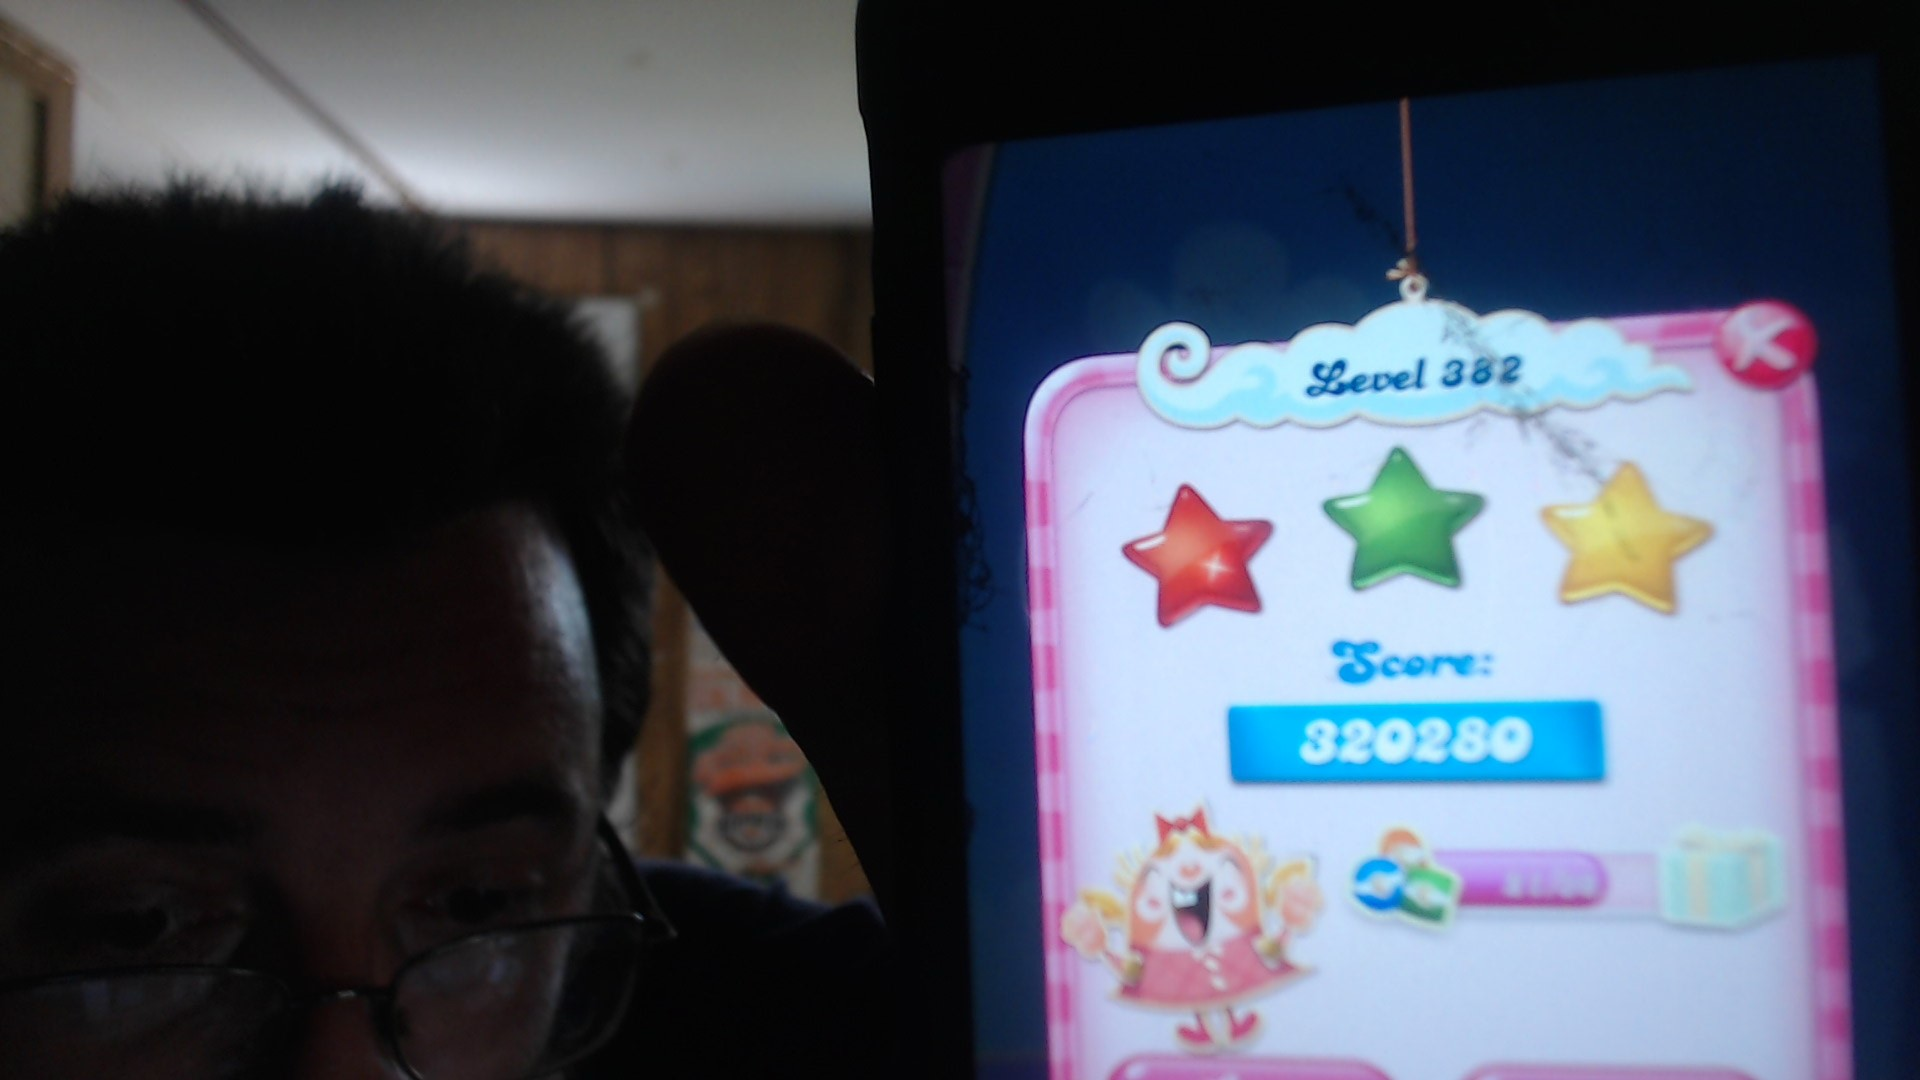 Candy Crush Saga: Level 382 320,280 points